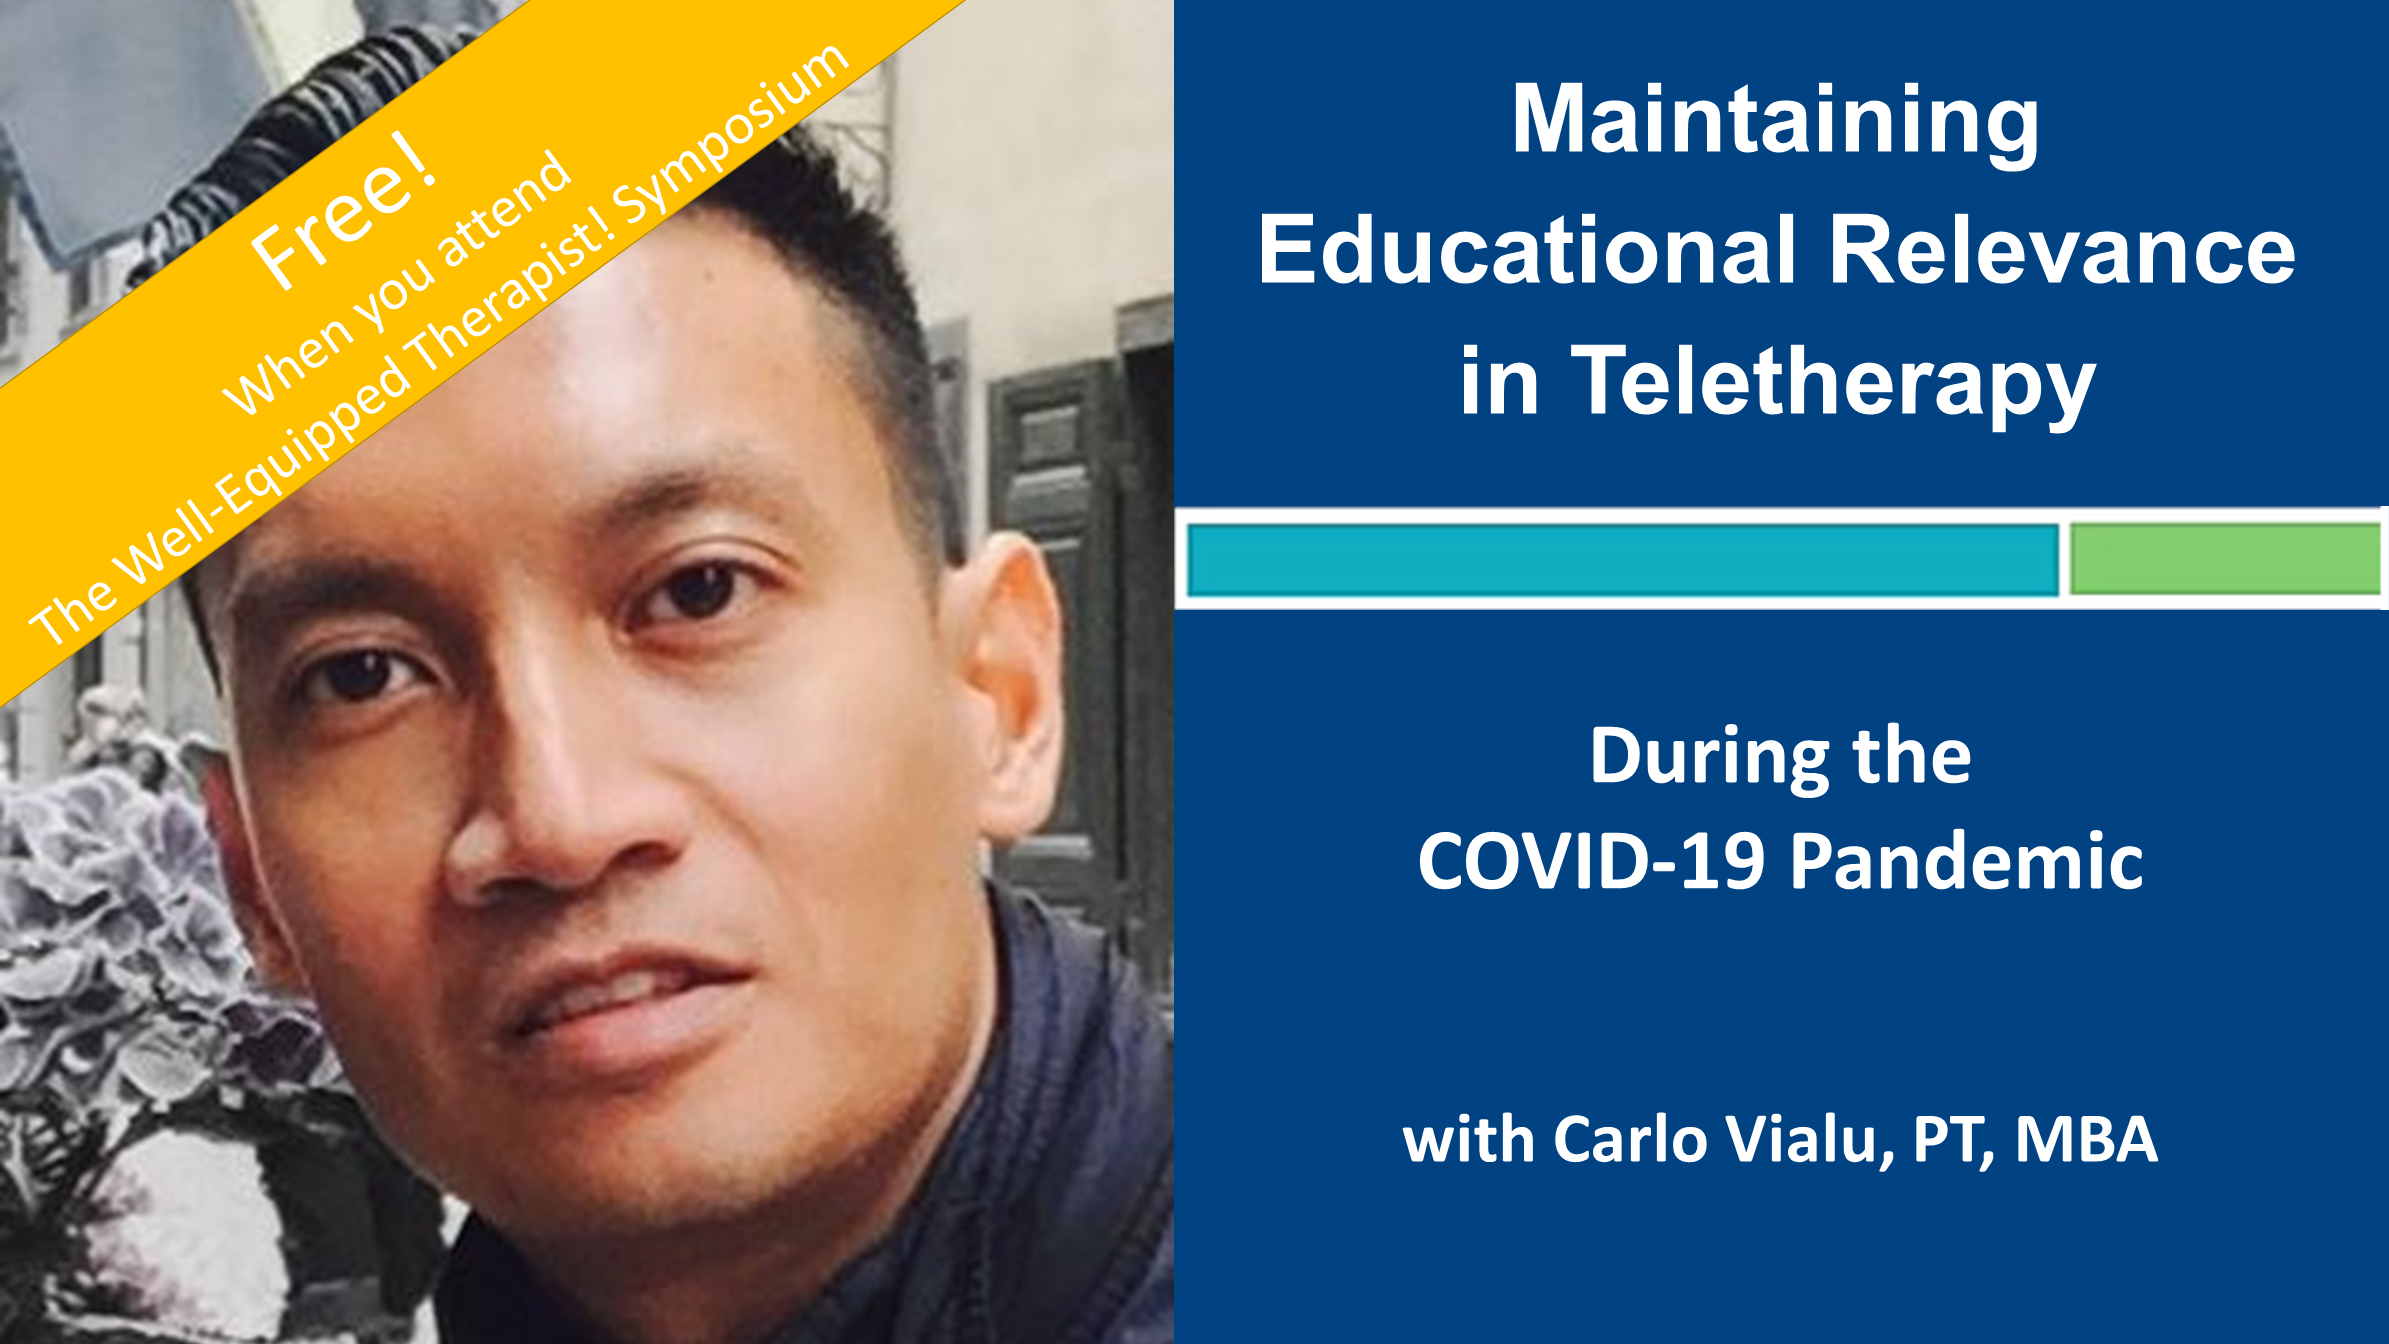 Maintaining Education Relevance in Teletherapy During the COVID-19 Pandemic